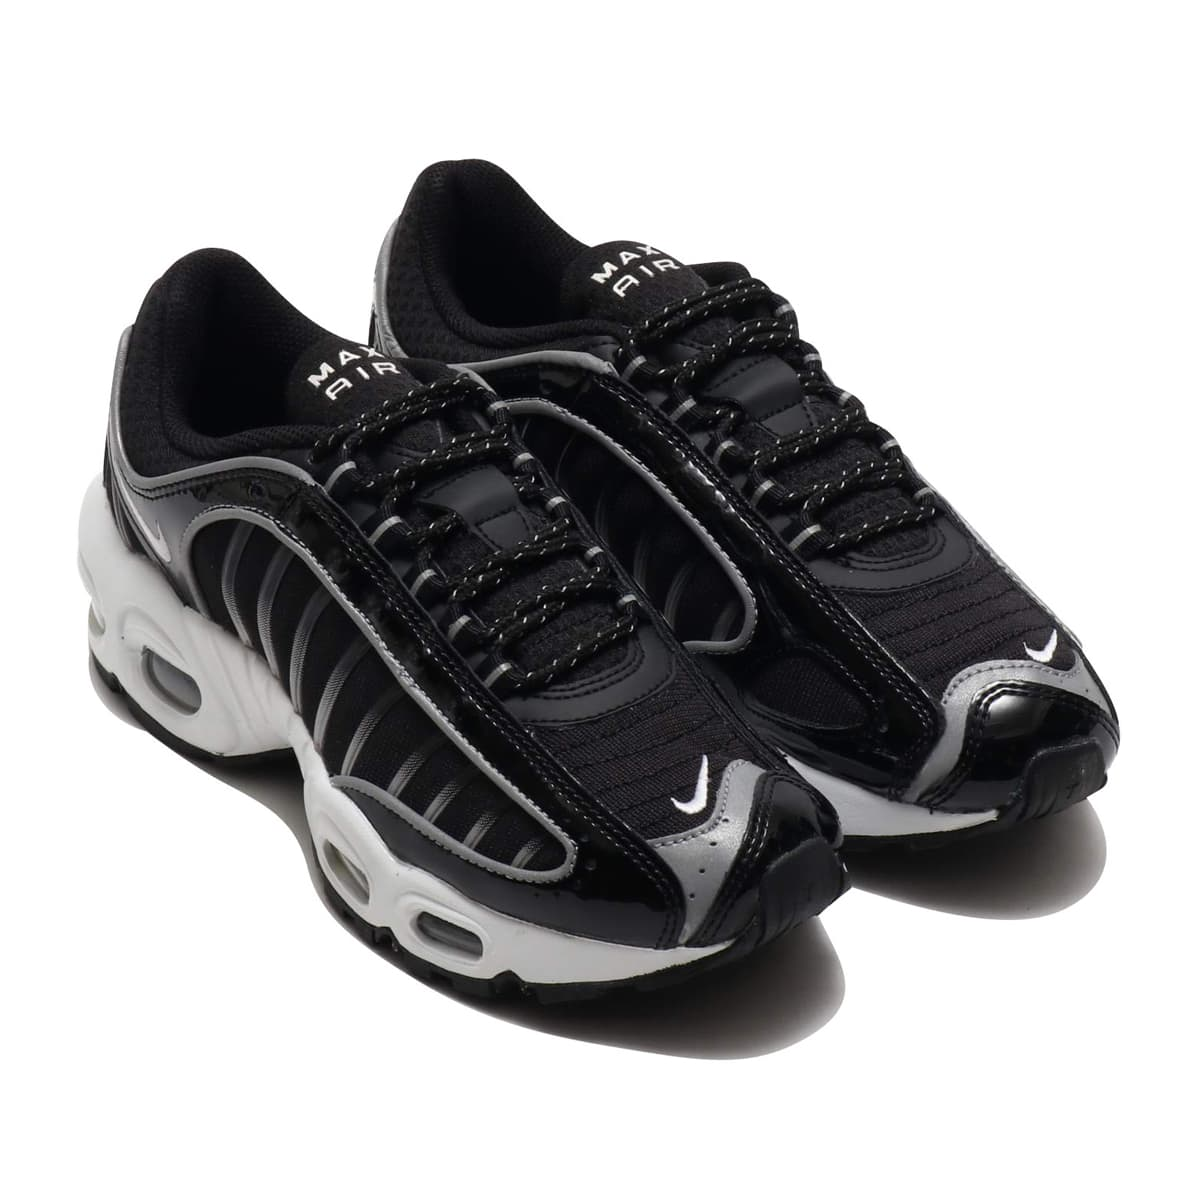 NIKE W AIR MAX TAILWIND IV NRG BLACK/WHITE-BLACK 19HO-S_photo_large